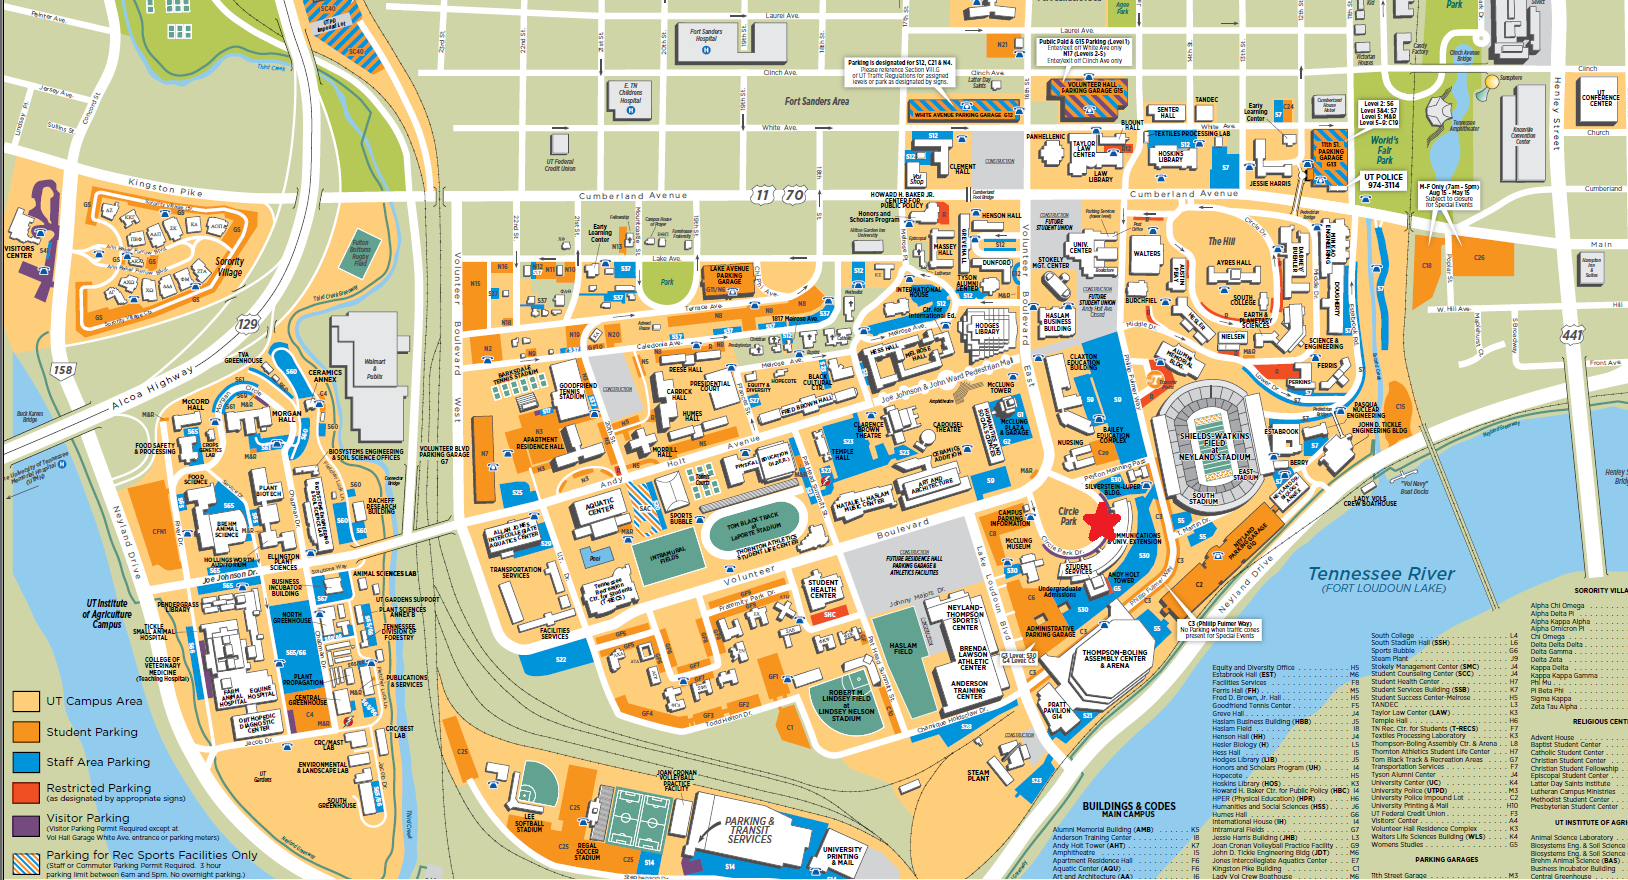 University Of Tennessee Knoxville Campus Map.University Tennessee Knoxville Campus Map